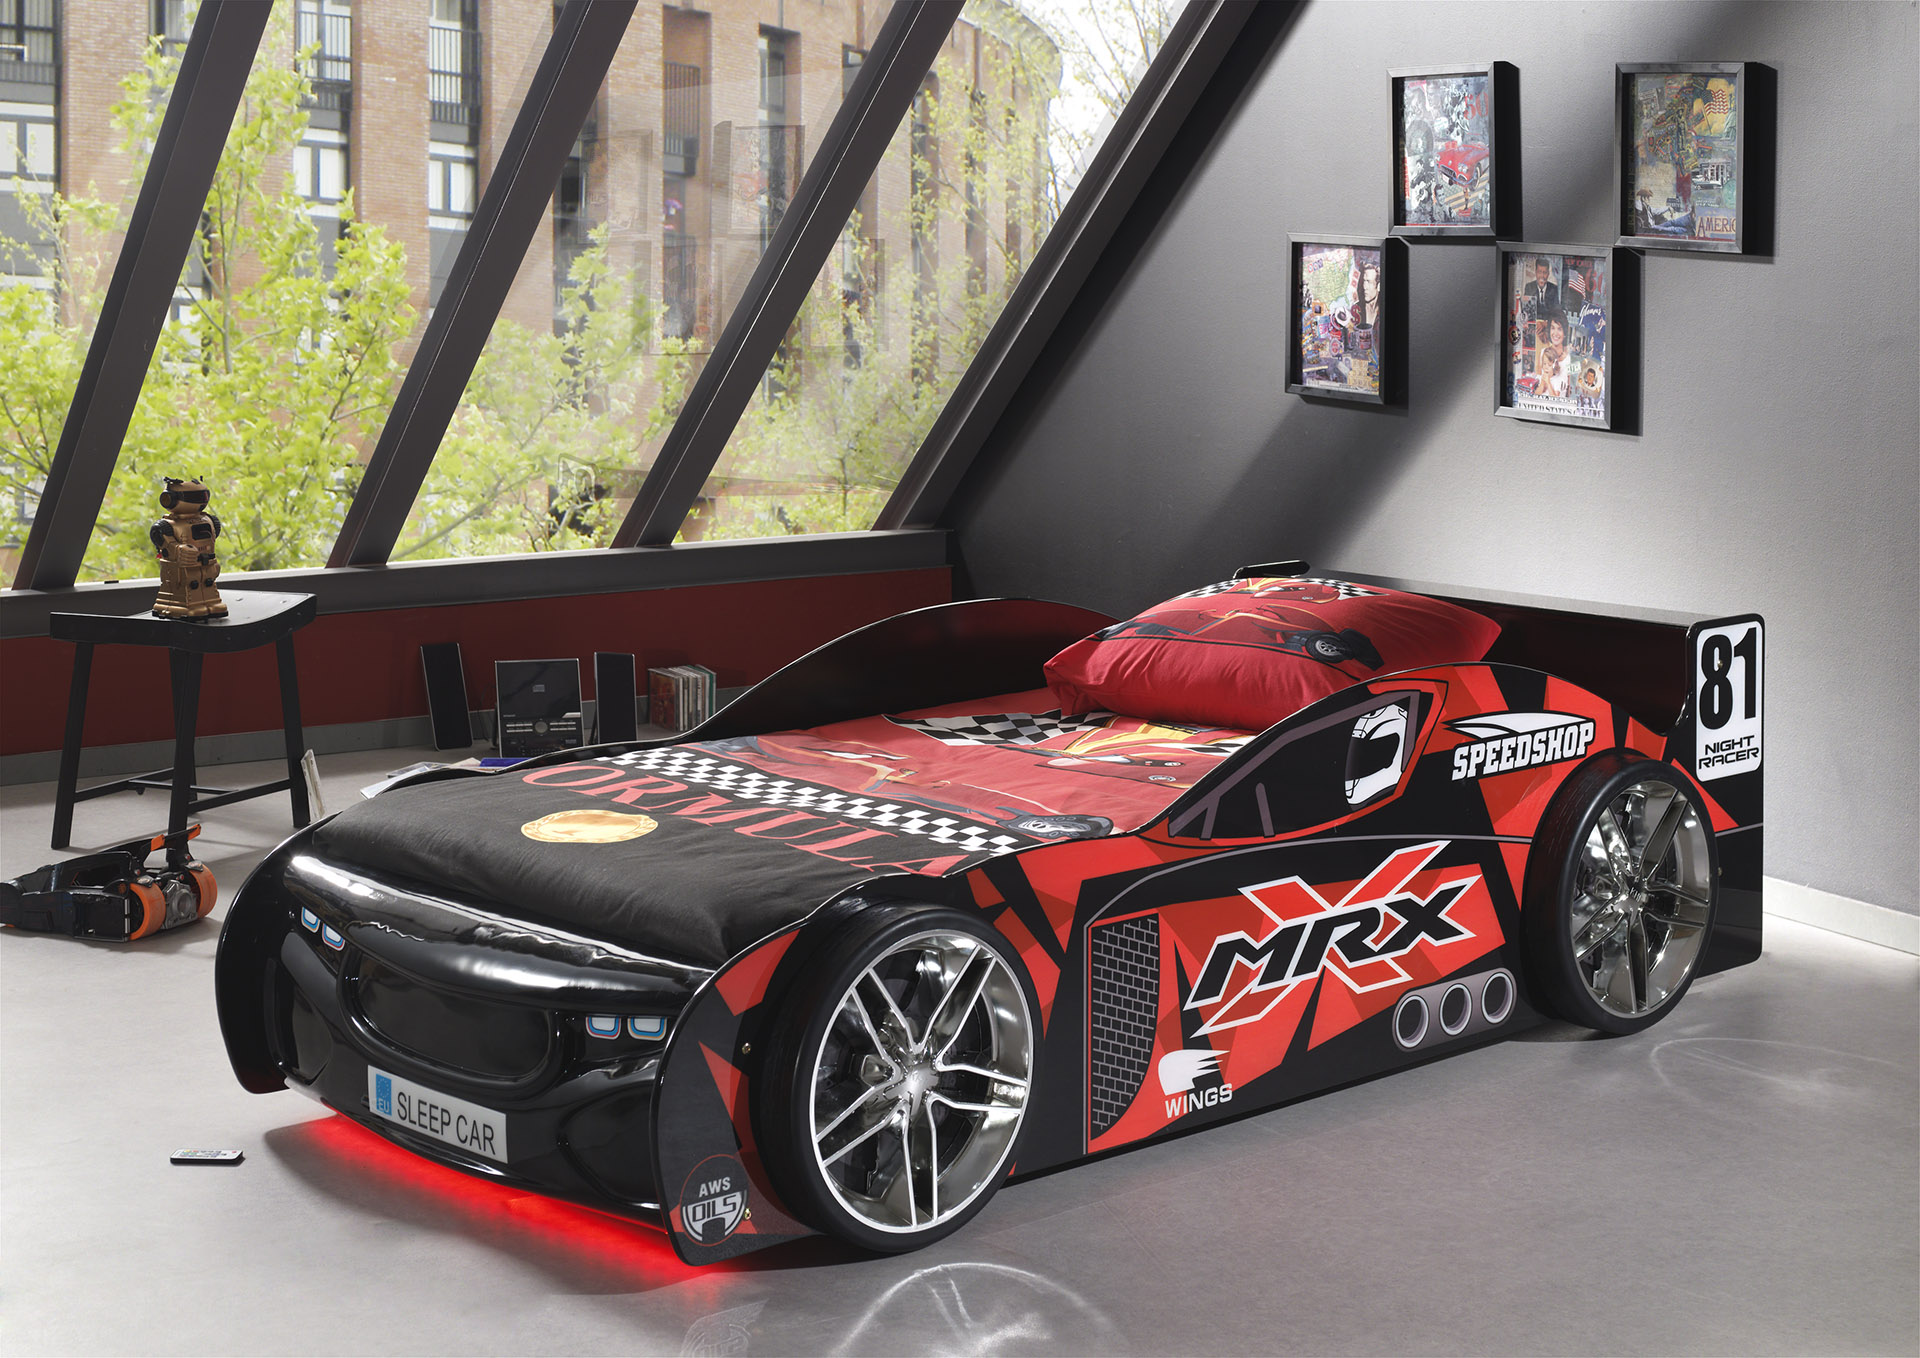 Chambre Spiderman Conforama Lit Voiture Tuning Black Avec Led